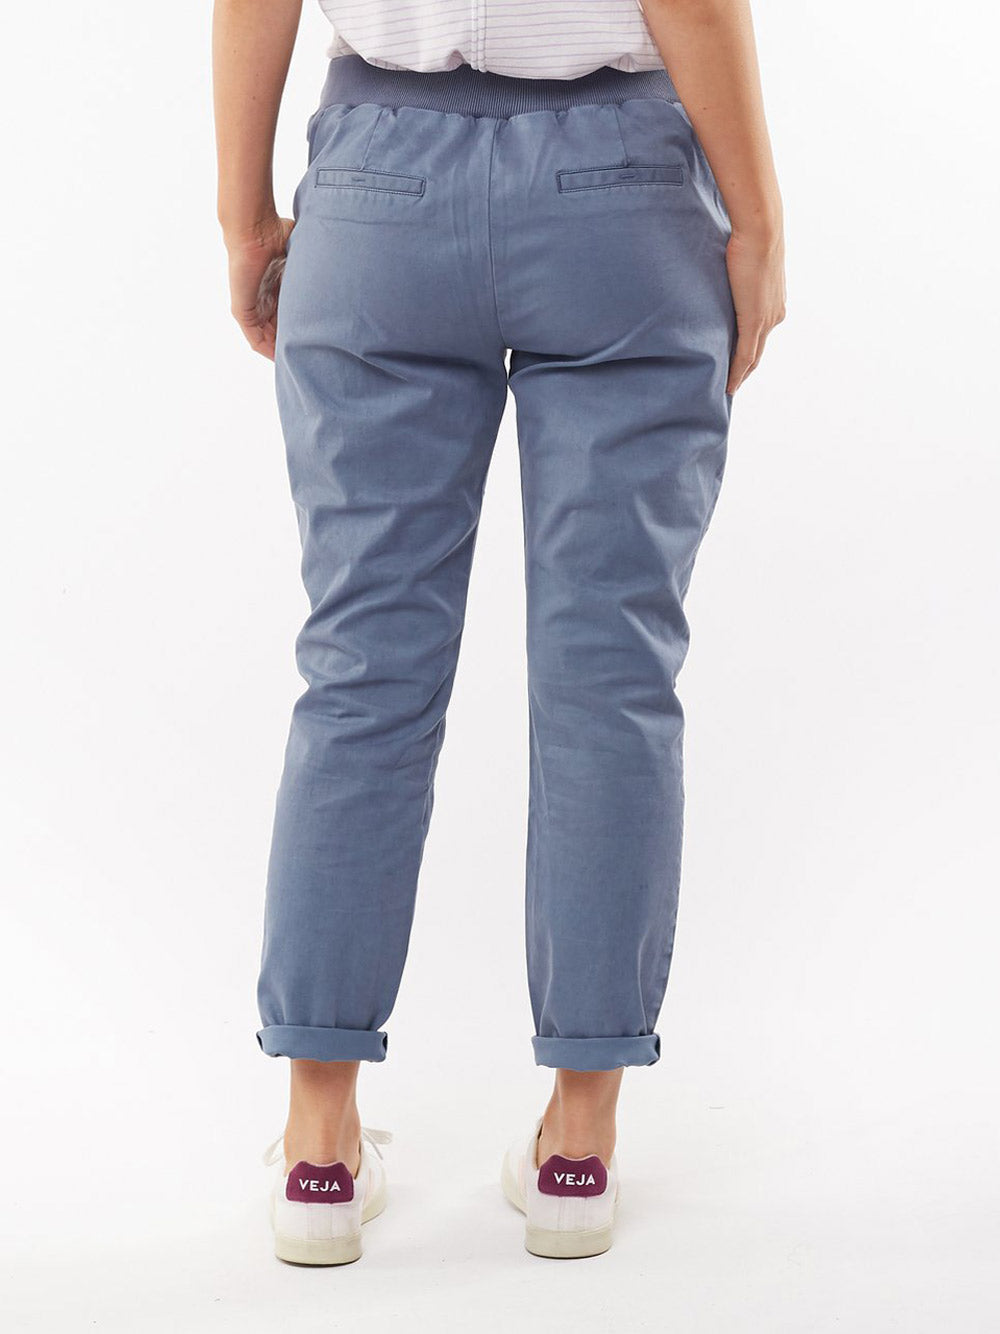 ELM LIFESTYLE Adelyn Chino Pant - Blue